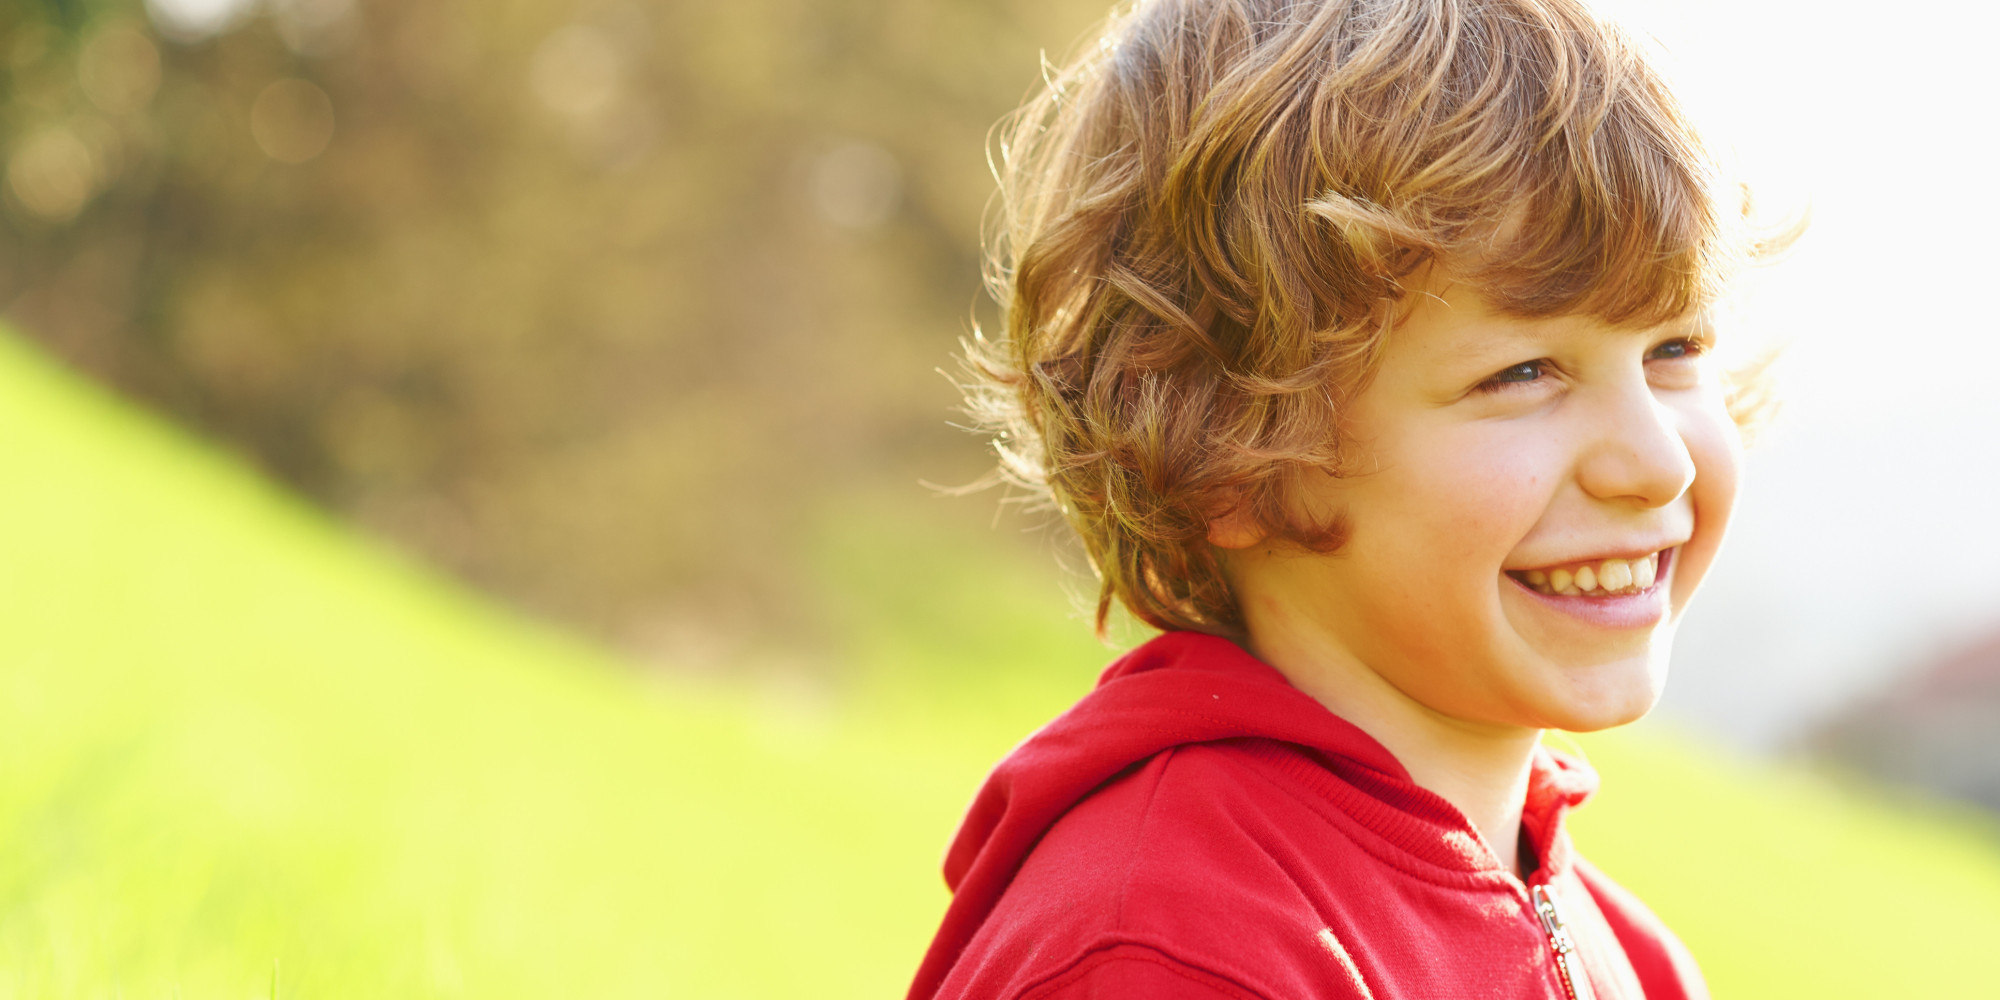 The Boy in the Red Hoodie | HuffPost